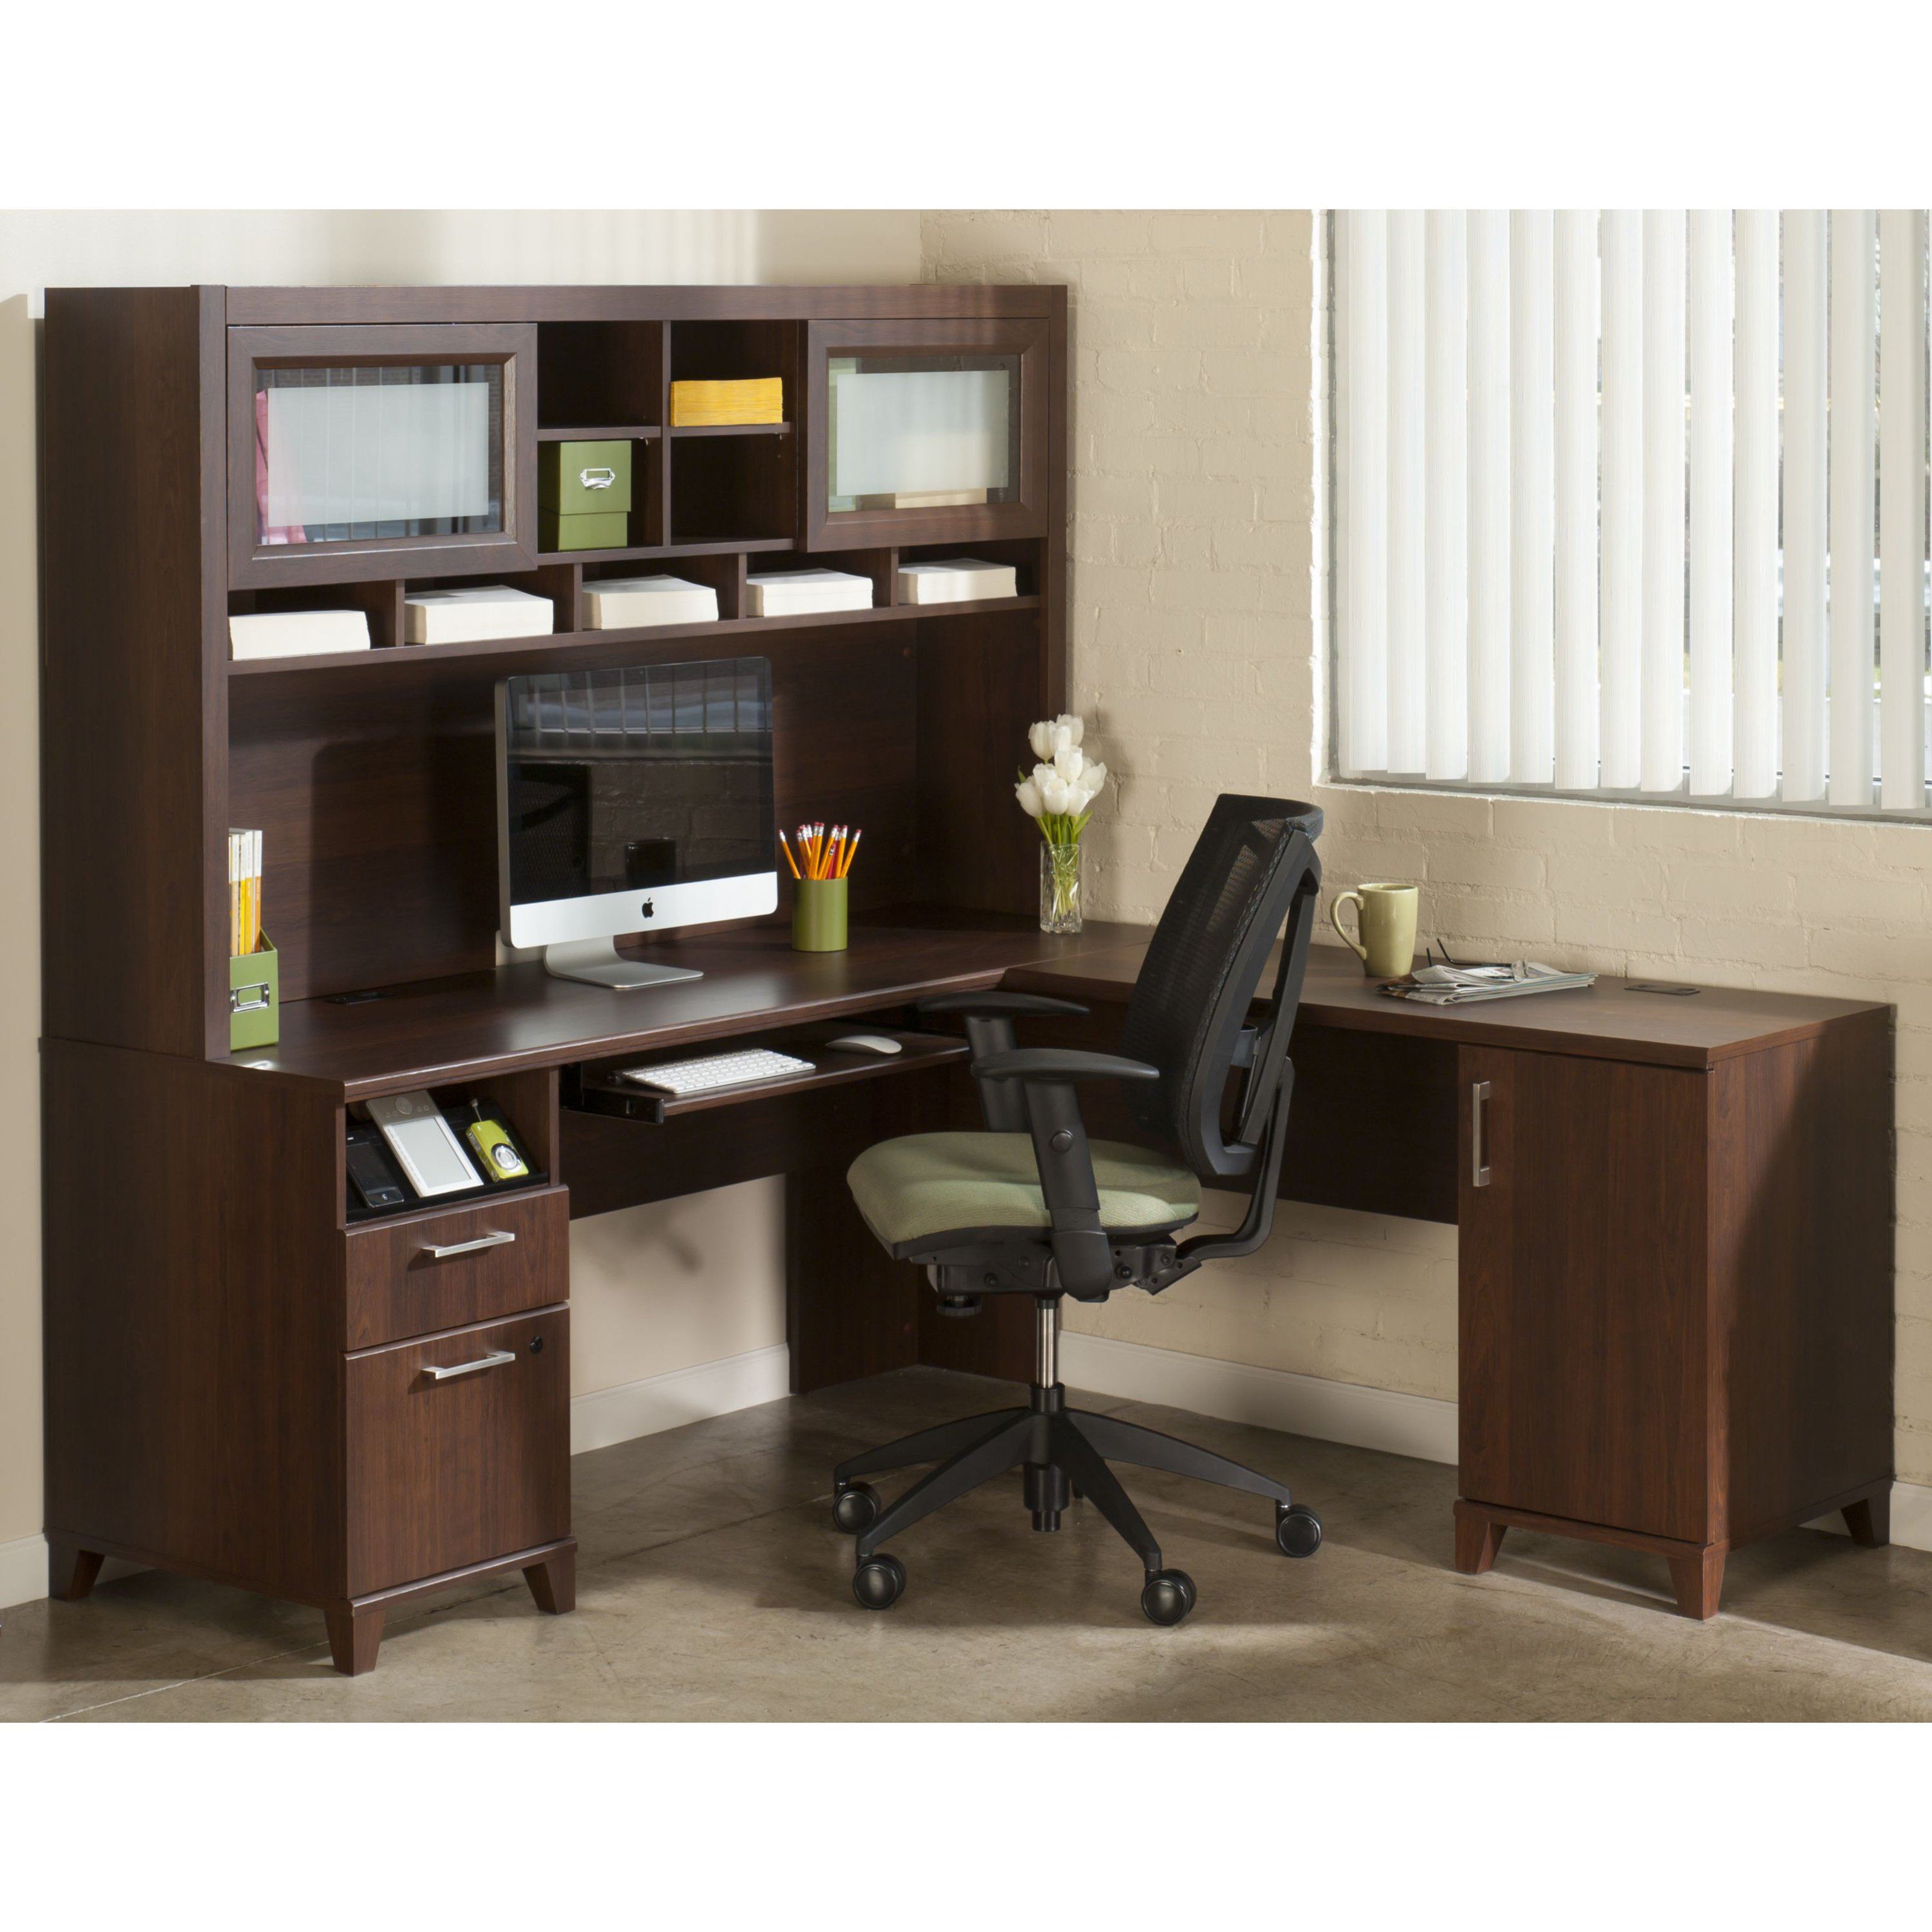 Bush Office Connect Achieve L-Shaped Desk with Hutch - Sweet Cherry